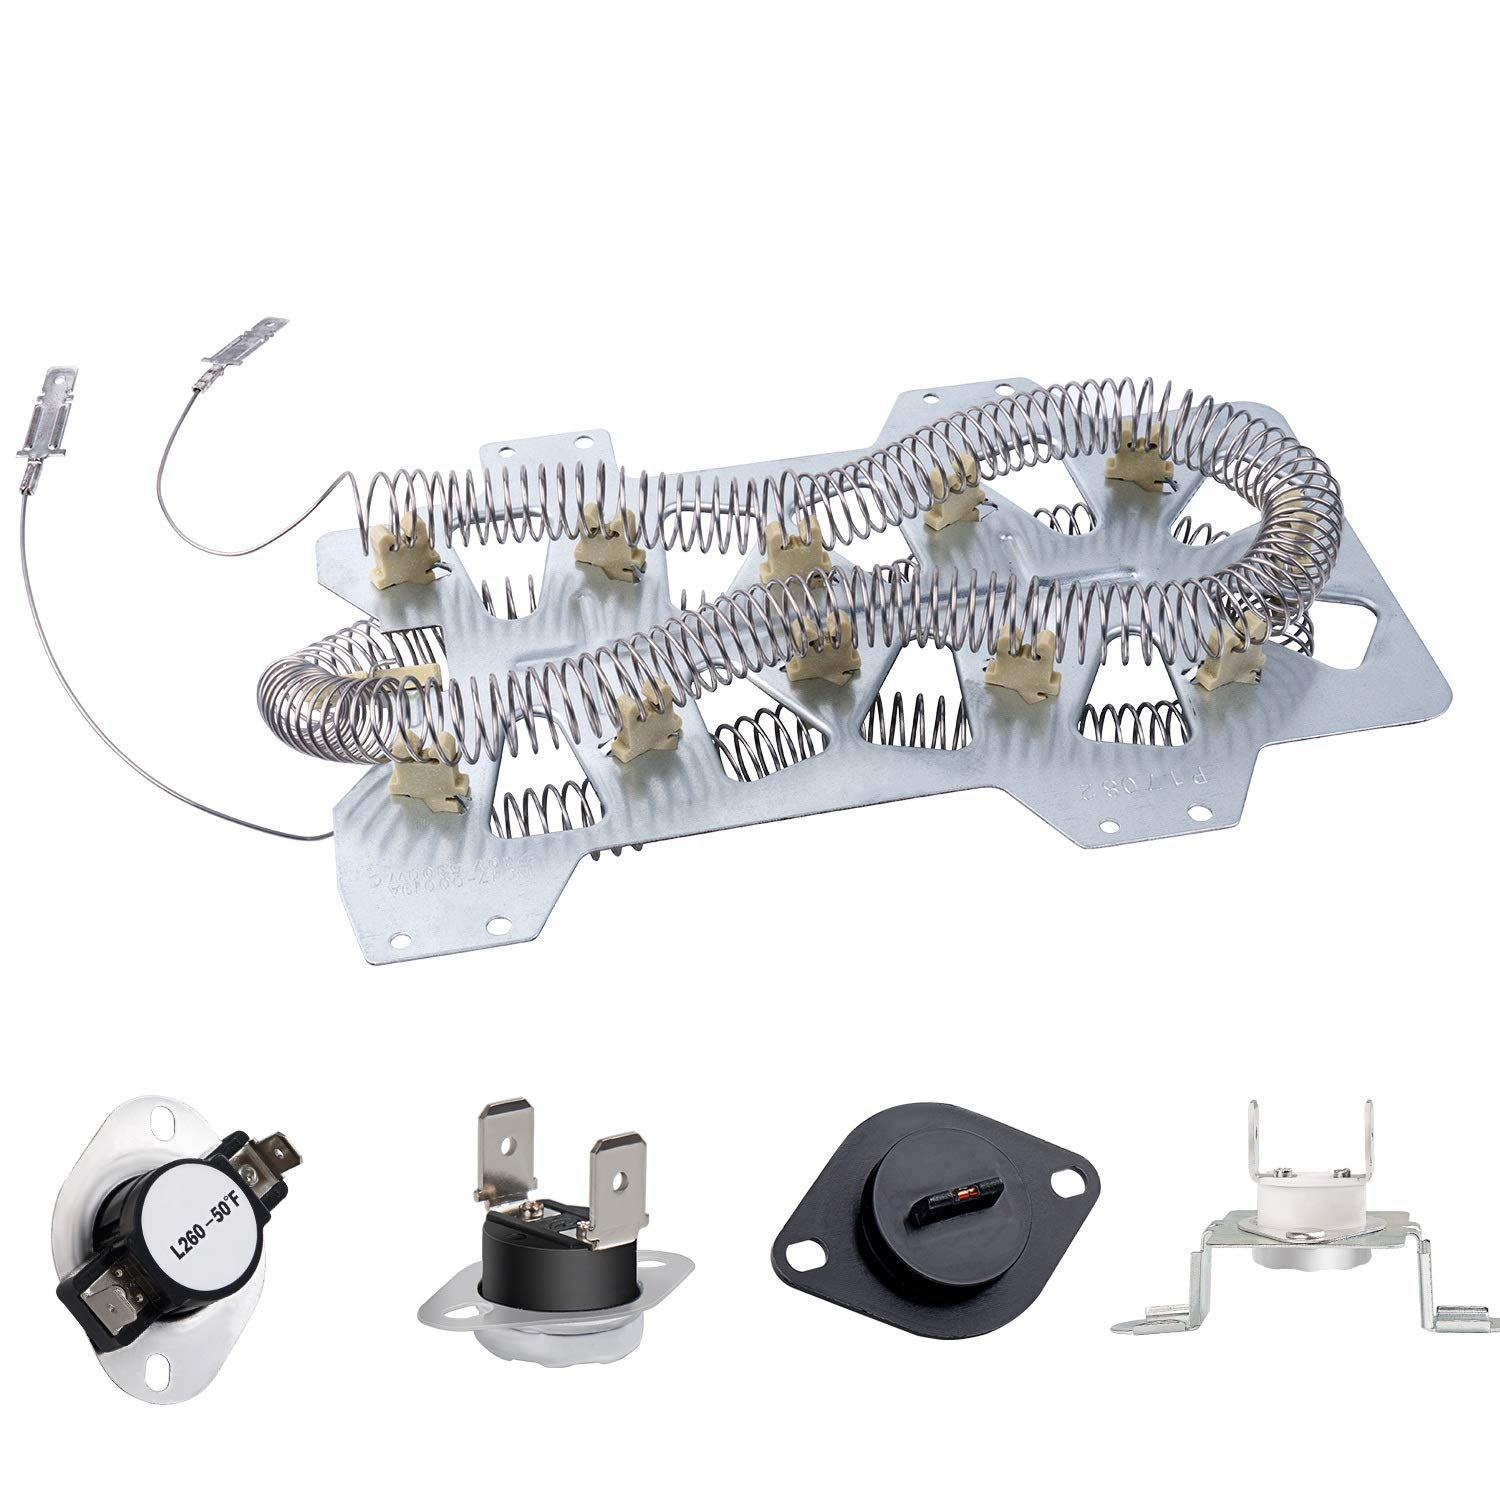 Dryer Repair Kit Compatible with Samsung Dryer Heating Element DC47-00019A, Thermostat DC47-00018A, Thermal Cut-Off Fuse DC47-00016A and DC96-00887A, Thermistor DC32-00007A